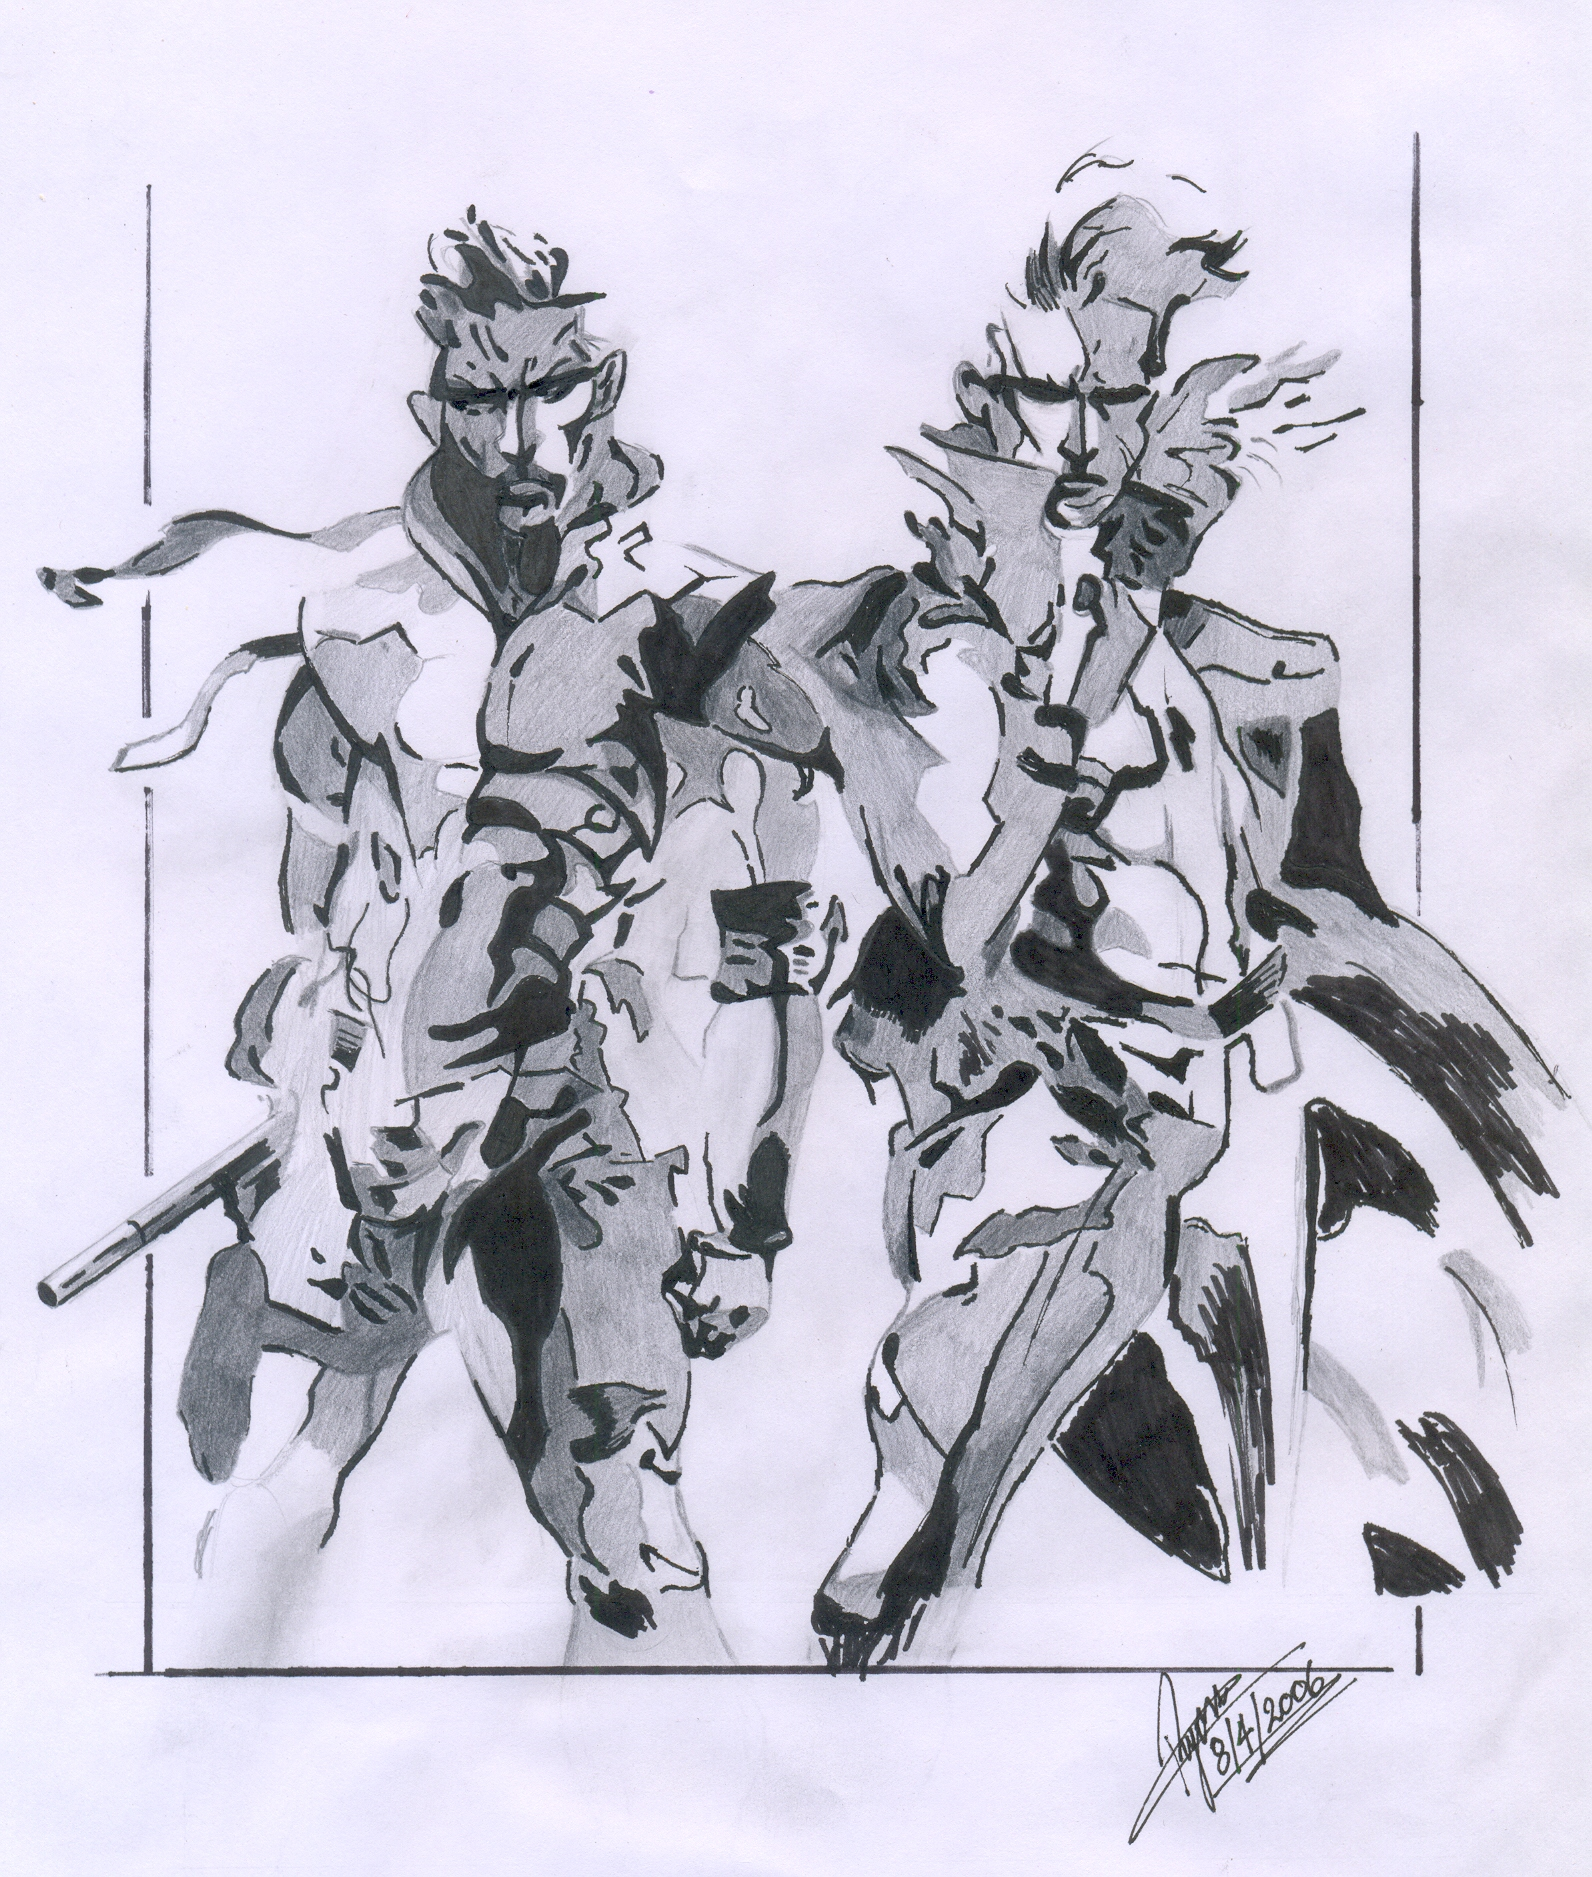 The Twin Snakes By Solid Snake 587 On Deviantart